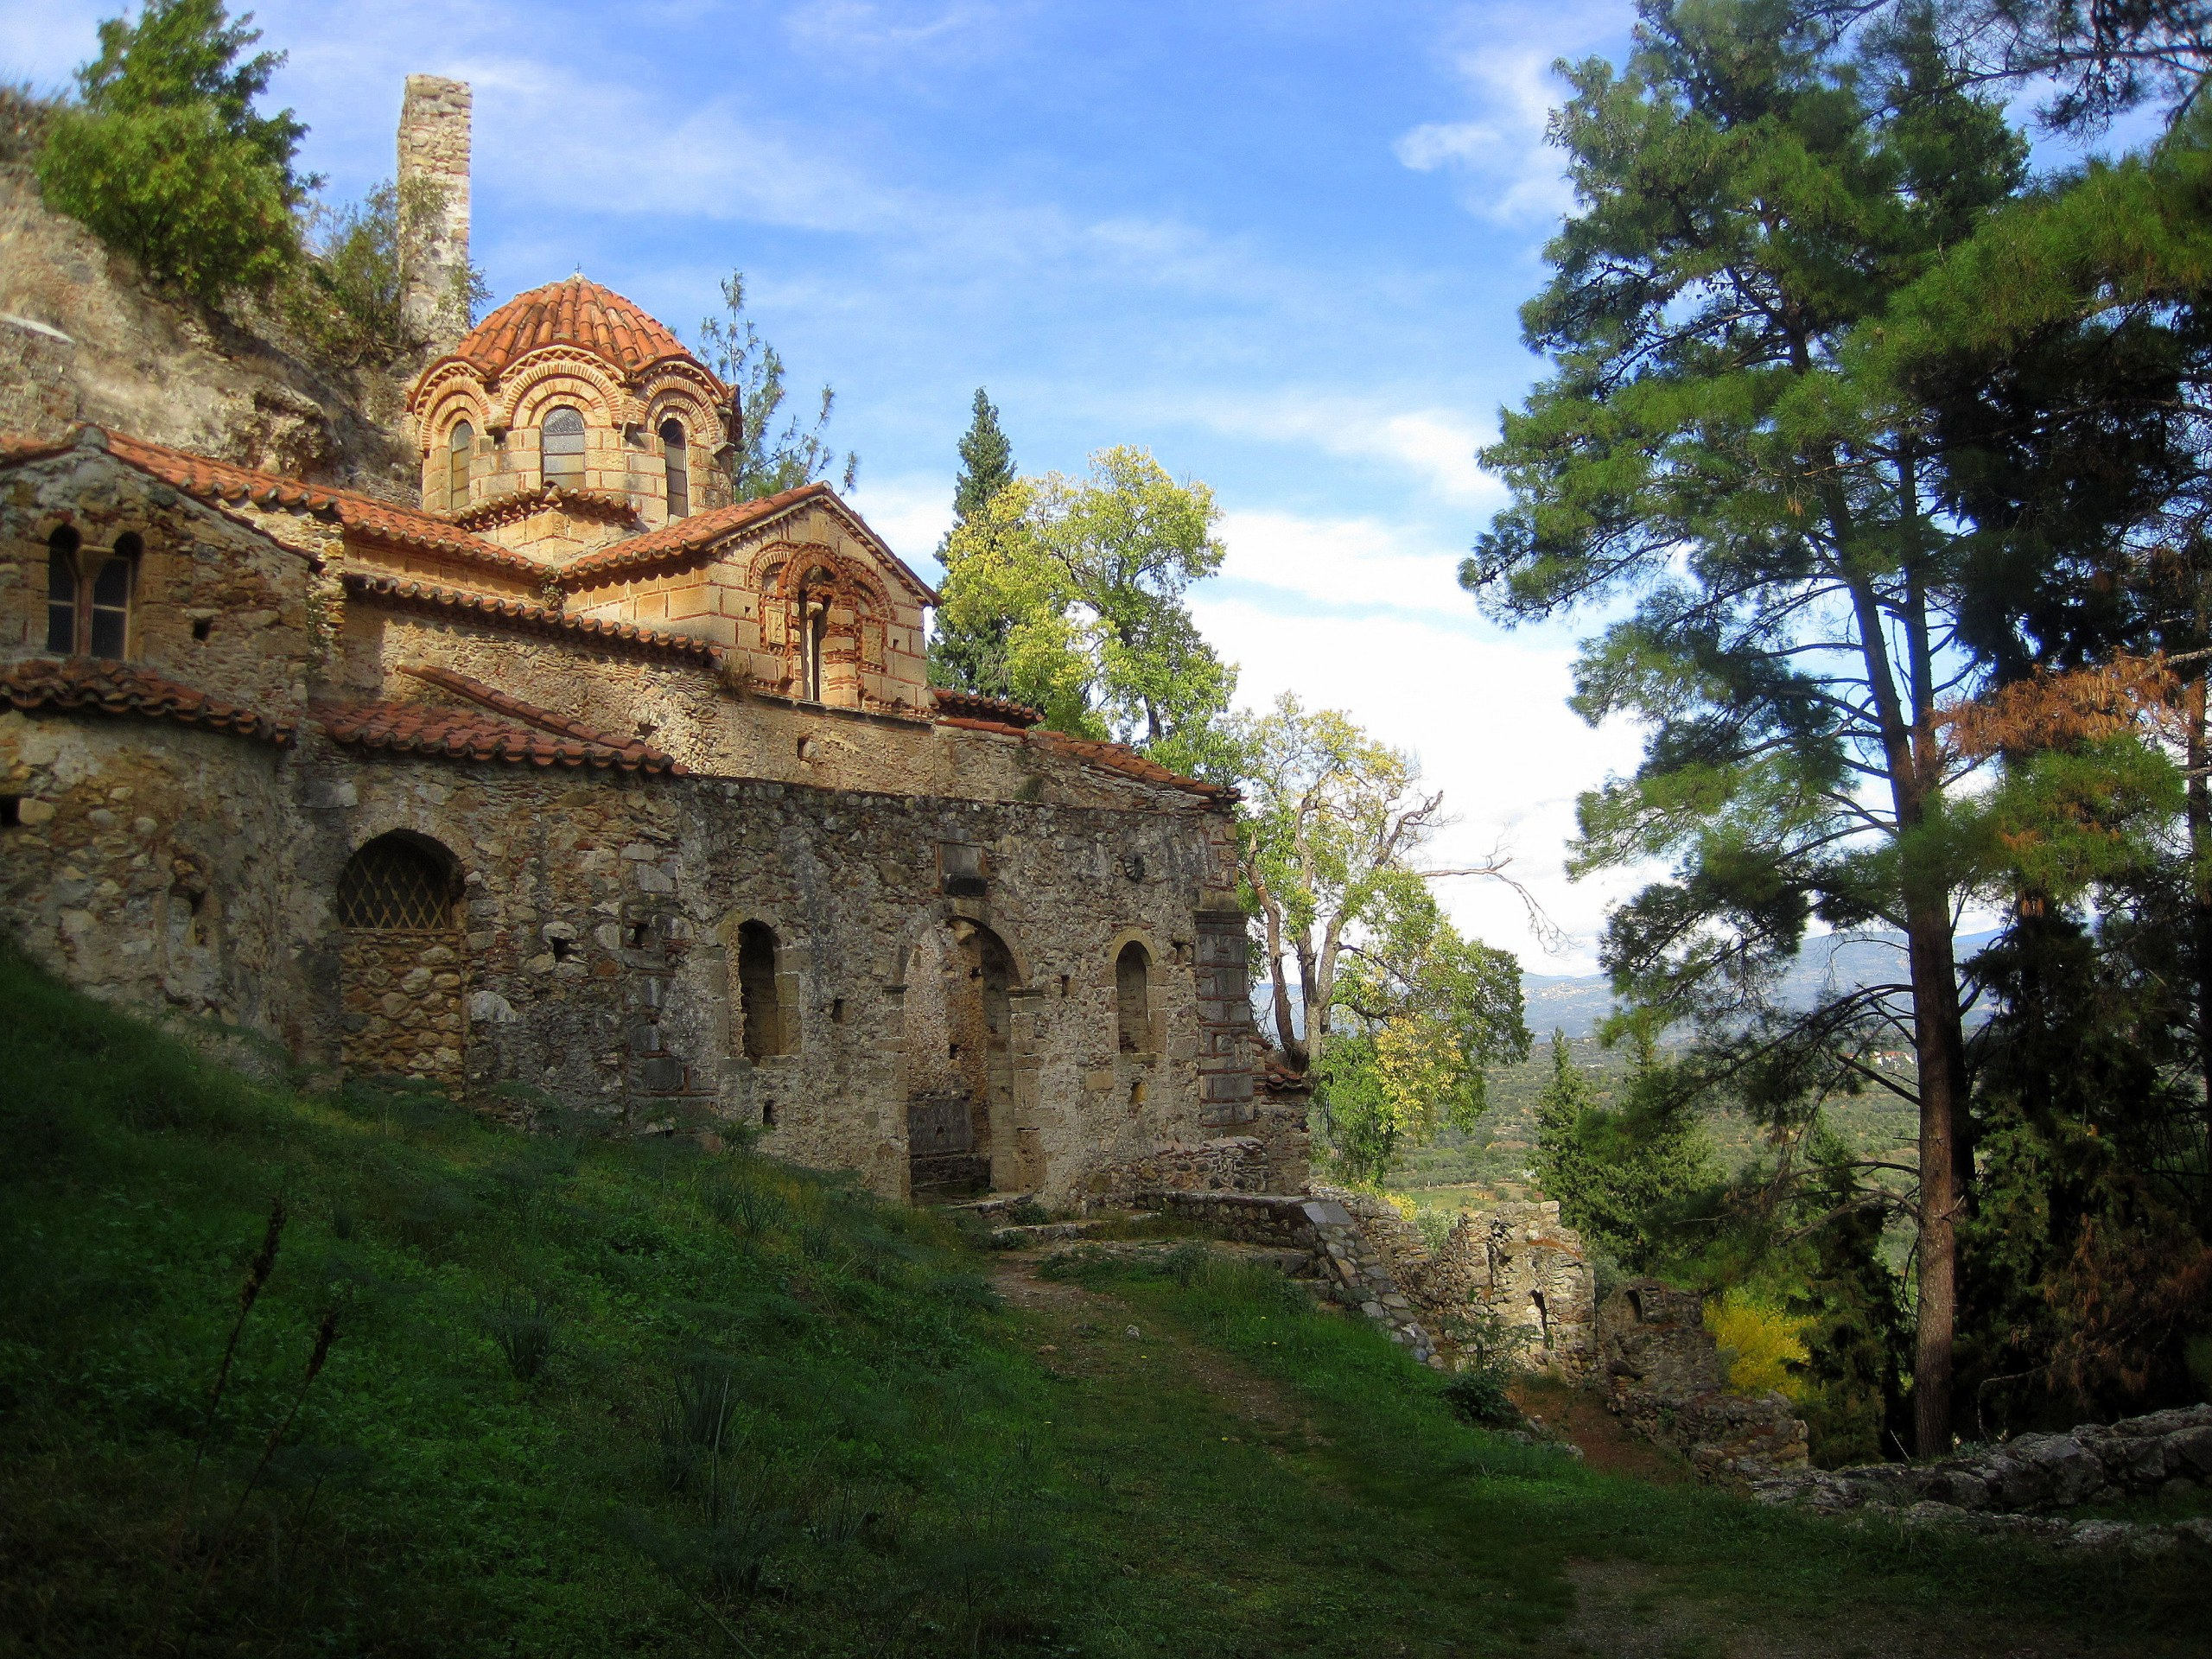 One of the most stunning archaeological sites in Greece, Mystras is a beautiful fortified city on a hillside in the Peloponnese.